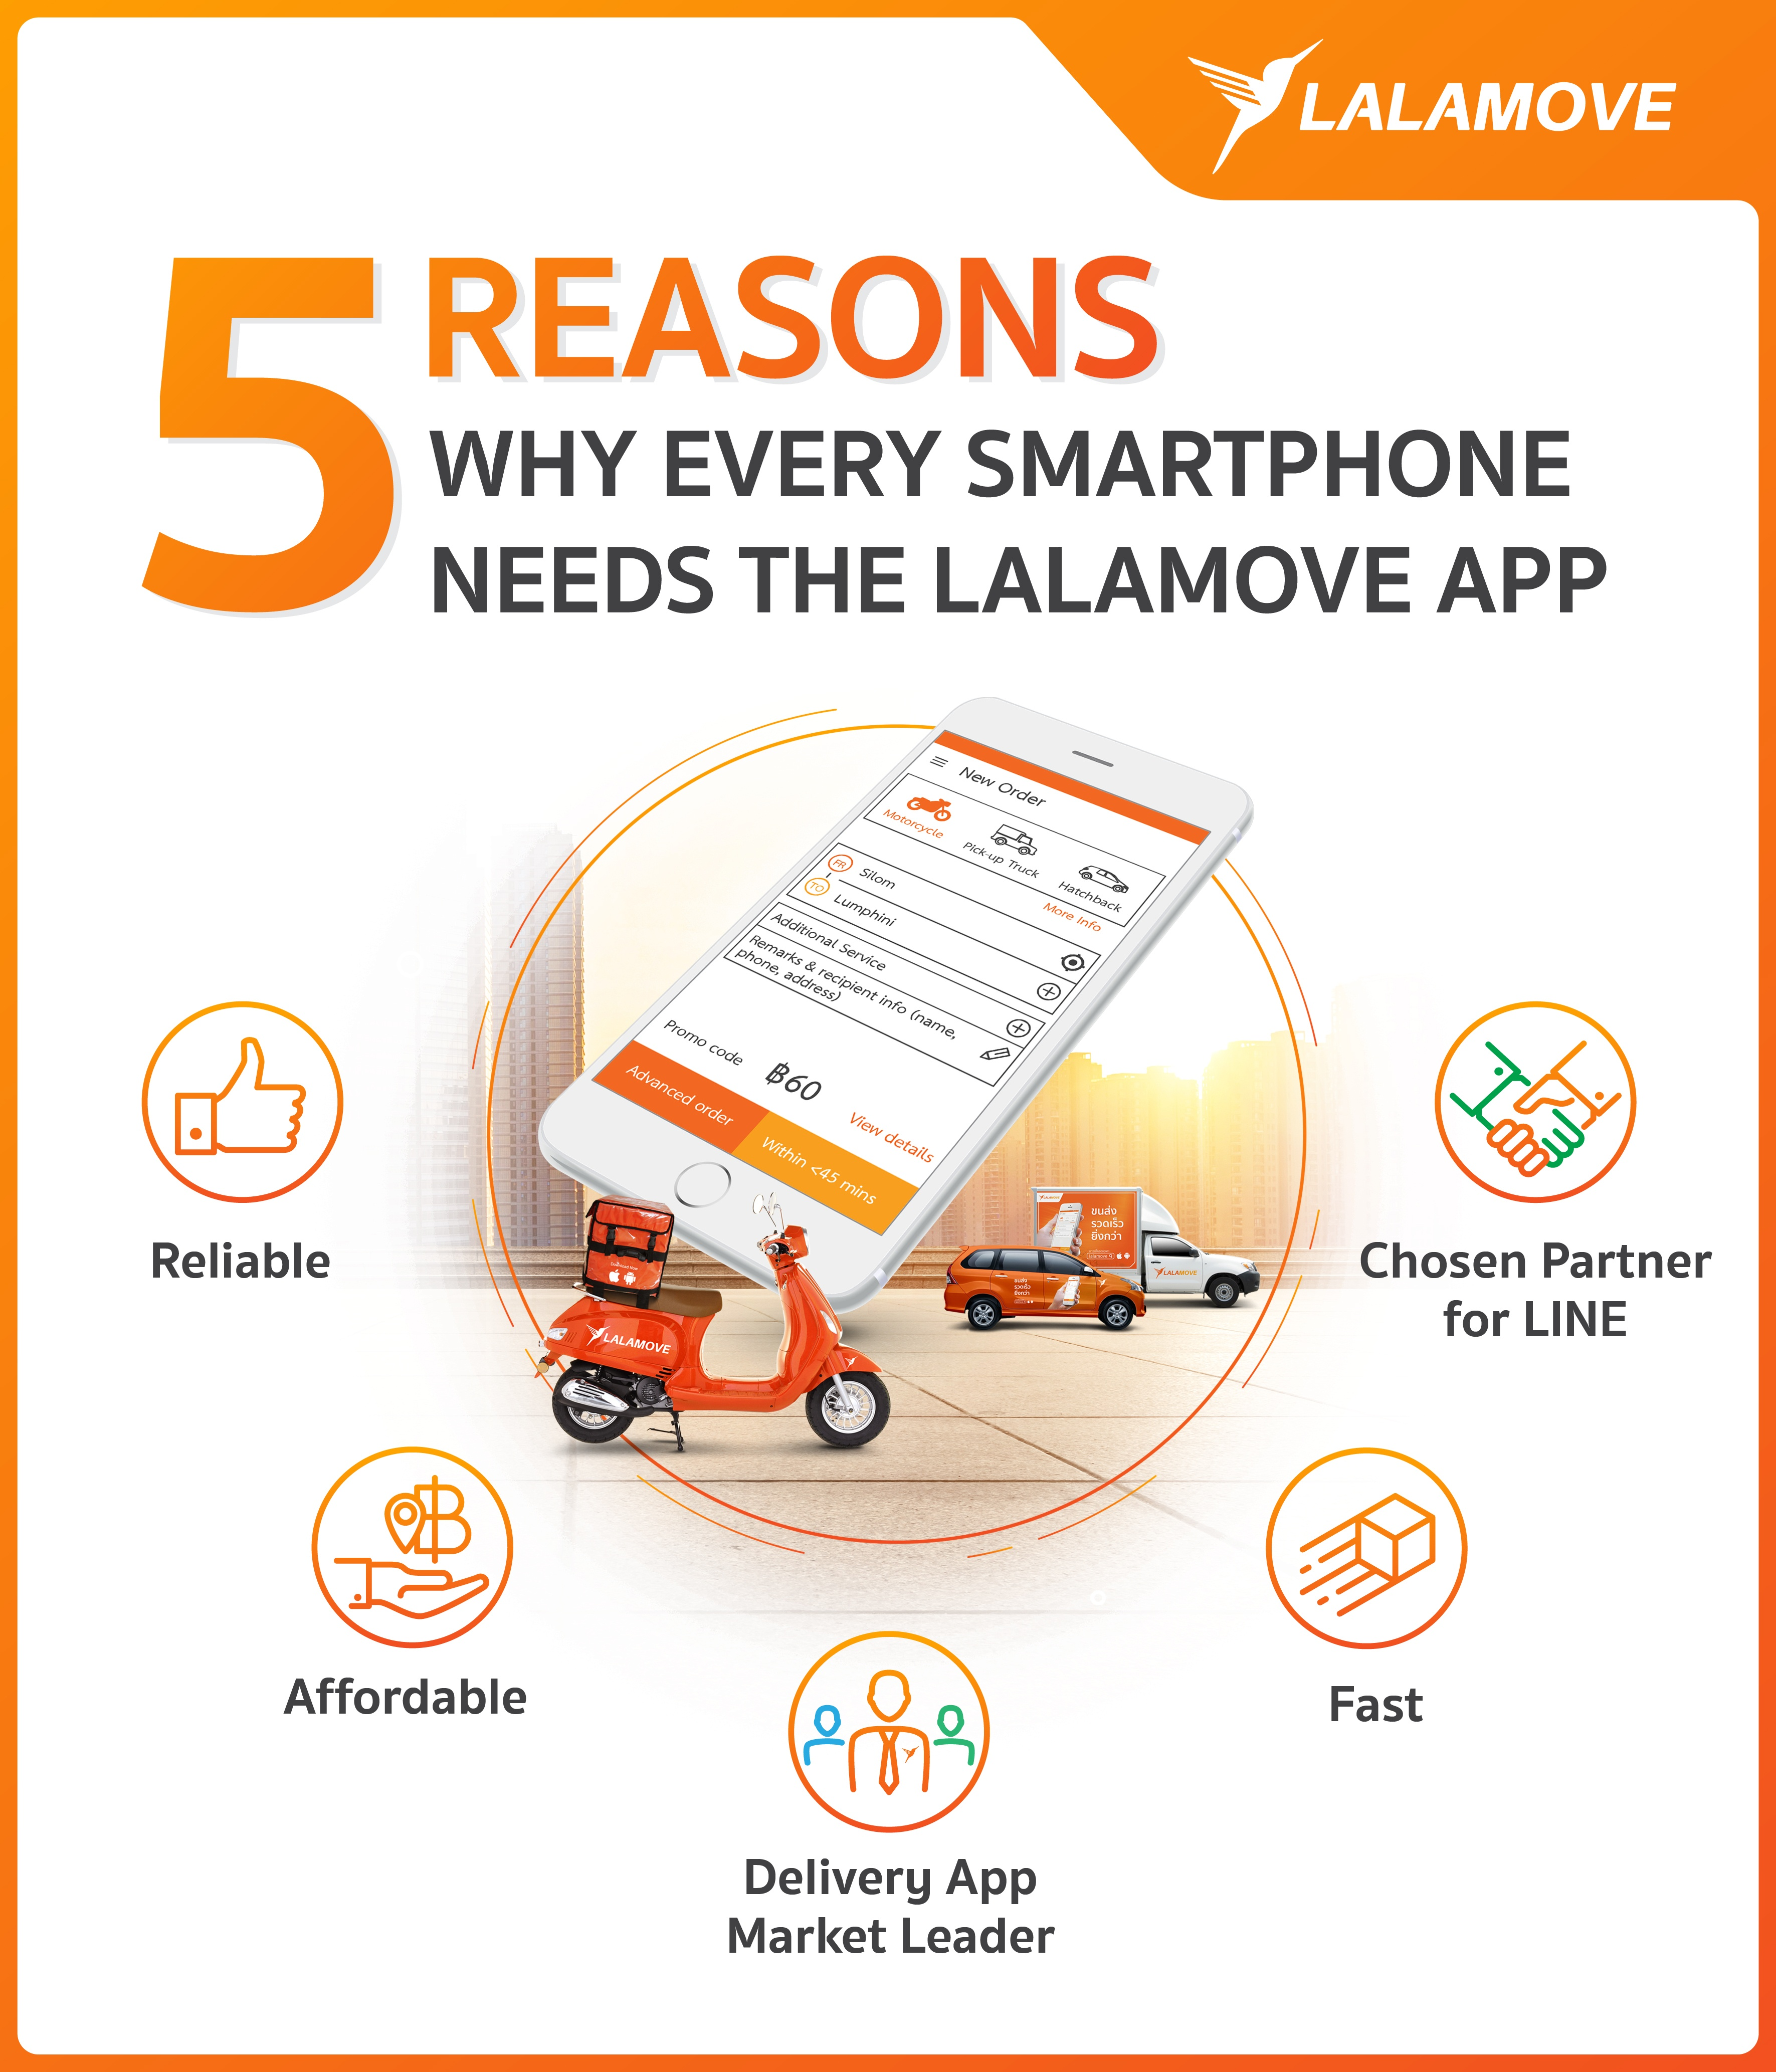 5-Reasons-Why-Every-Smartphone-Needs-the-Lalamove-Delivery-App